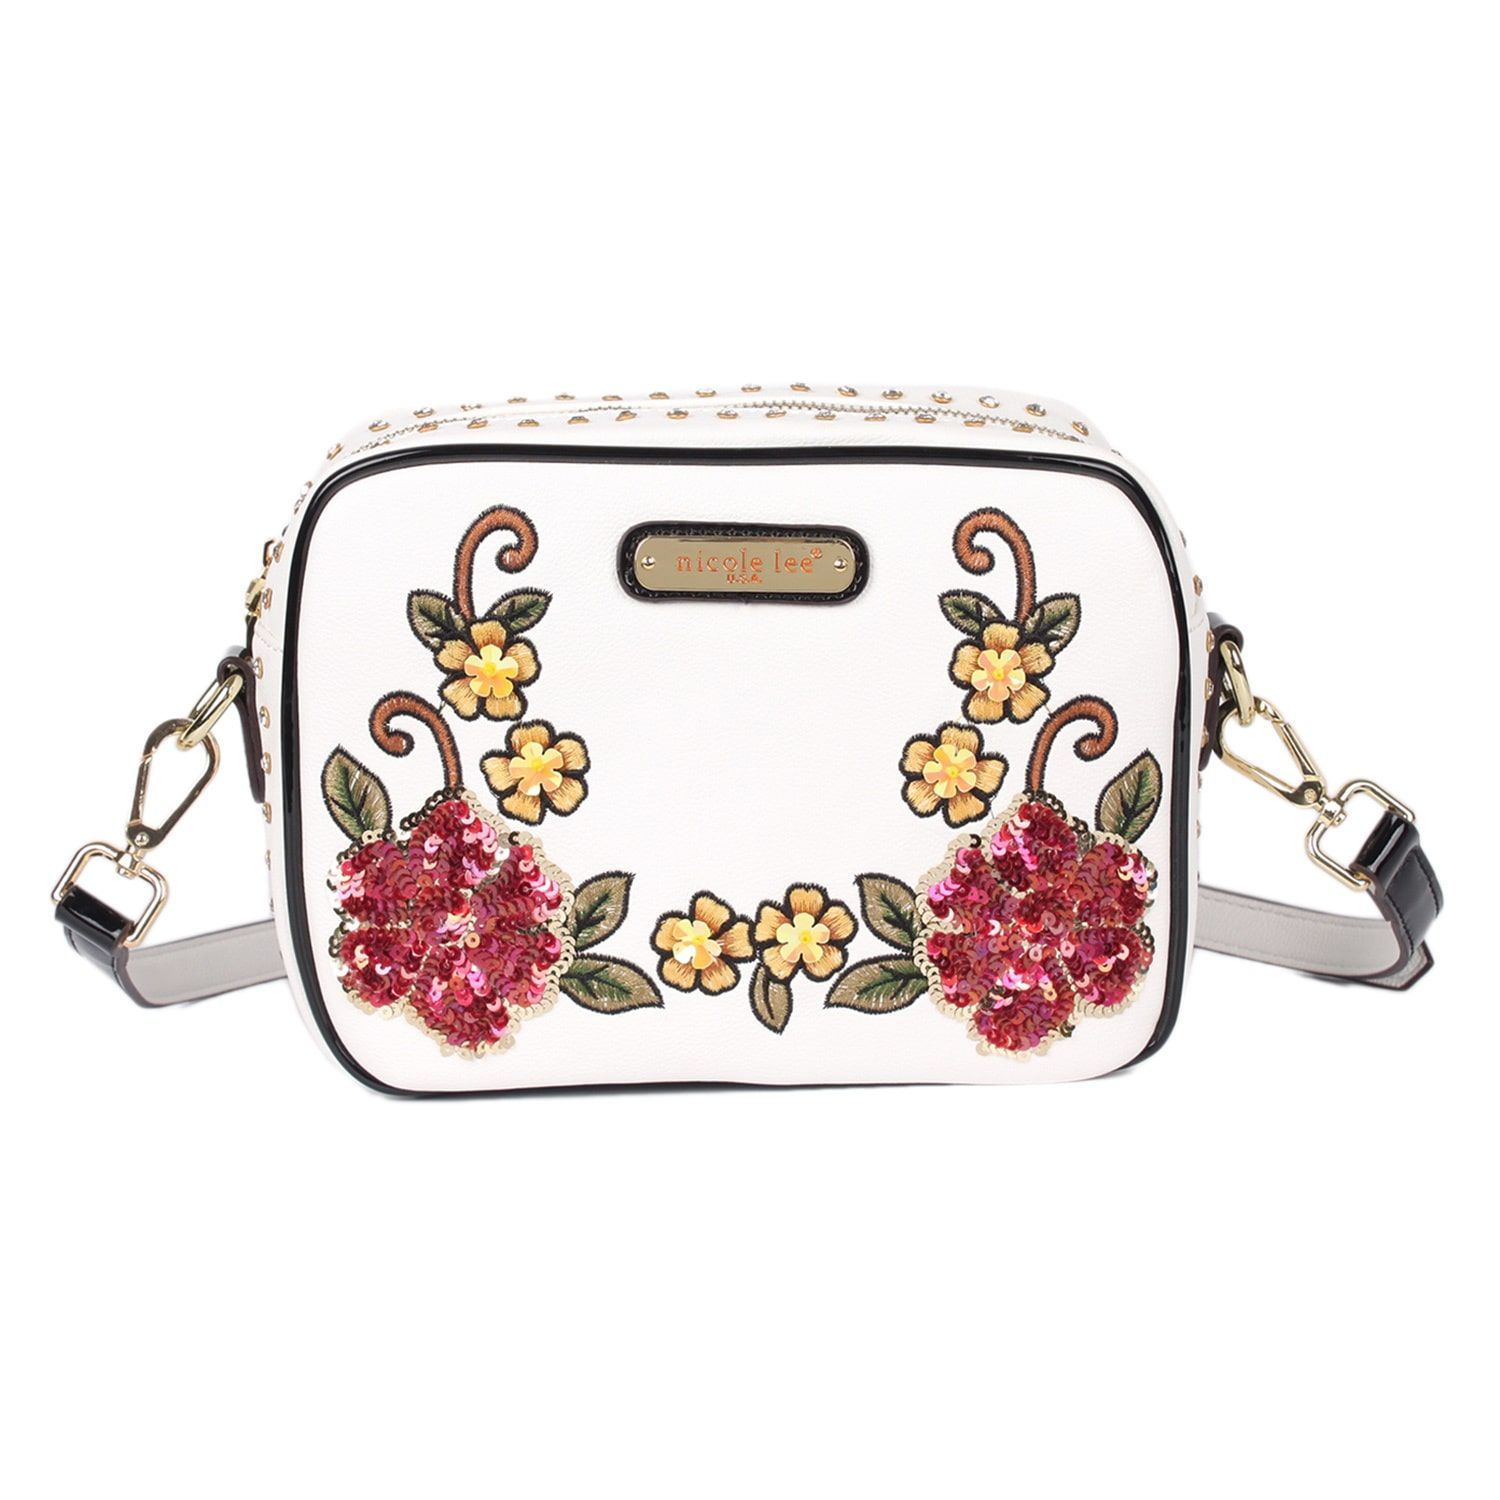 nicole lee Sequin Floral White Faux Leather and Nylon Crossbody Bag  (White) 23522d766aafc